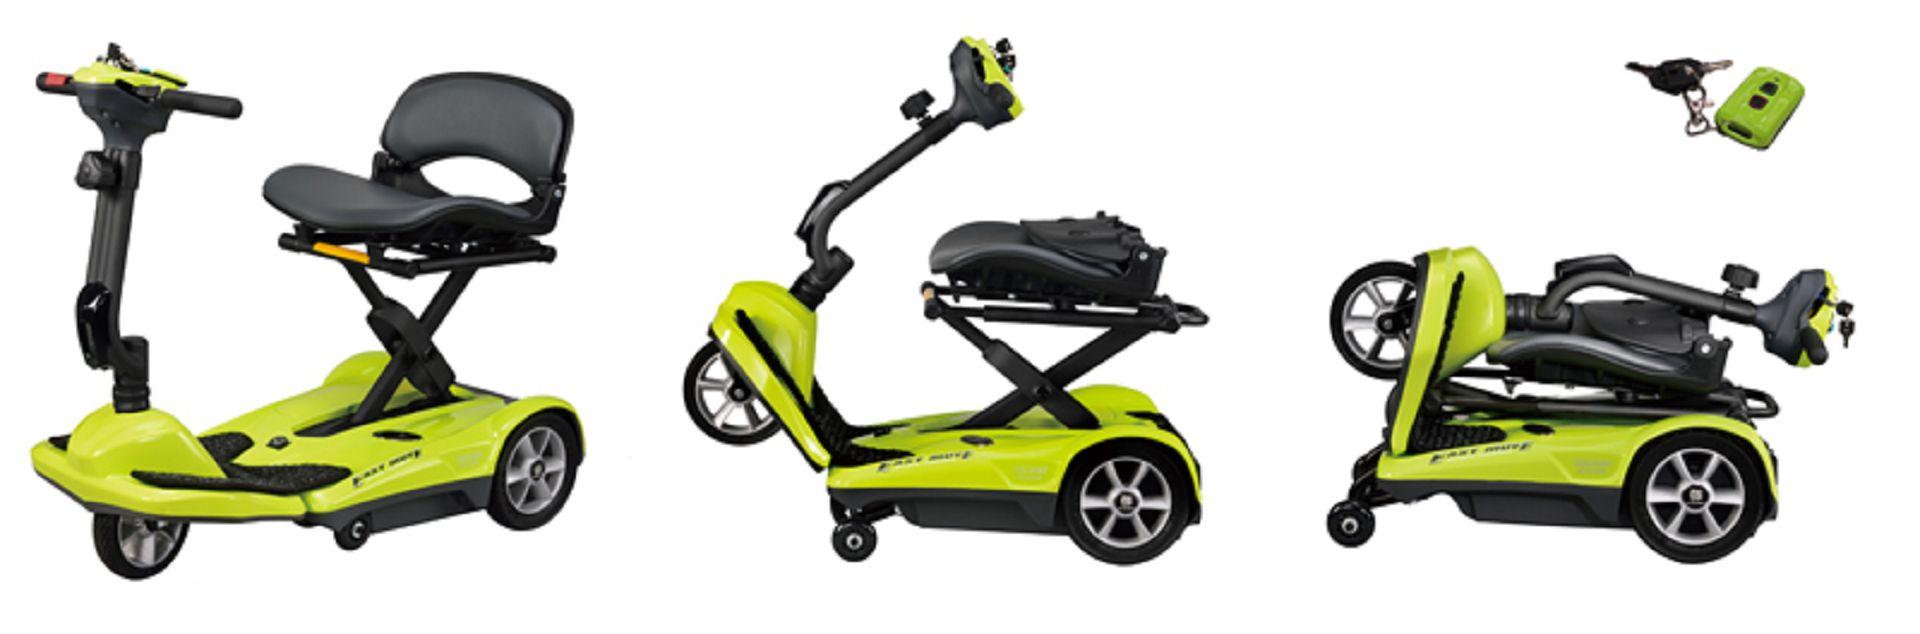 HEARTWAY MEDICAL PRODUCTS CO., LTD.-Compact Scooters